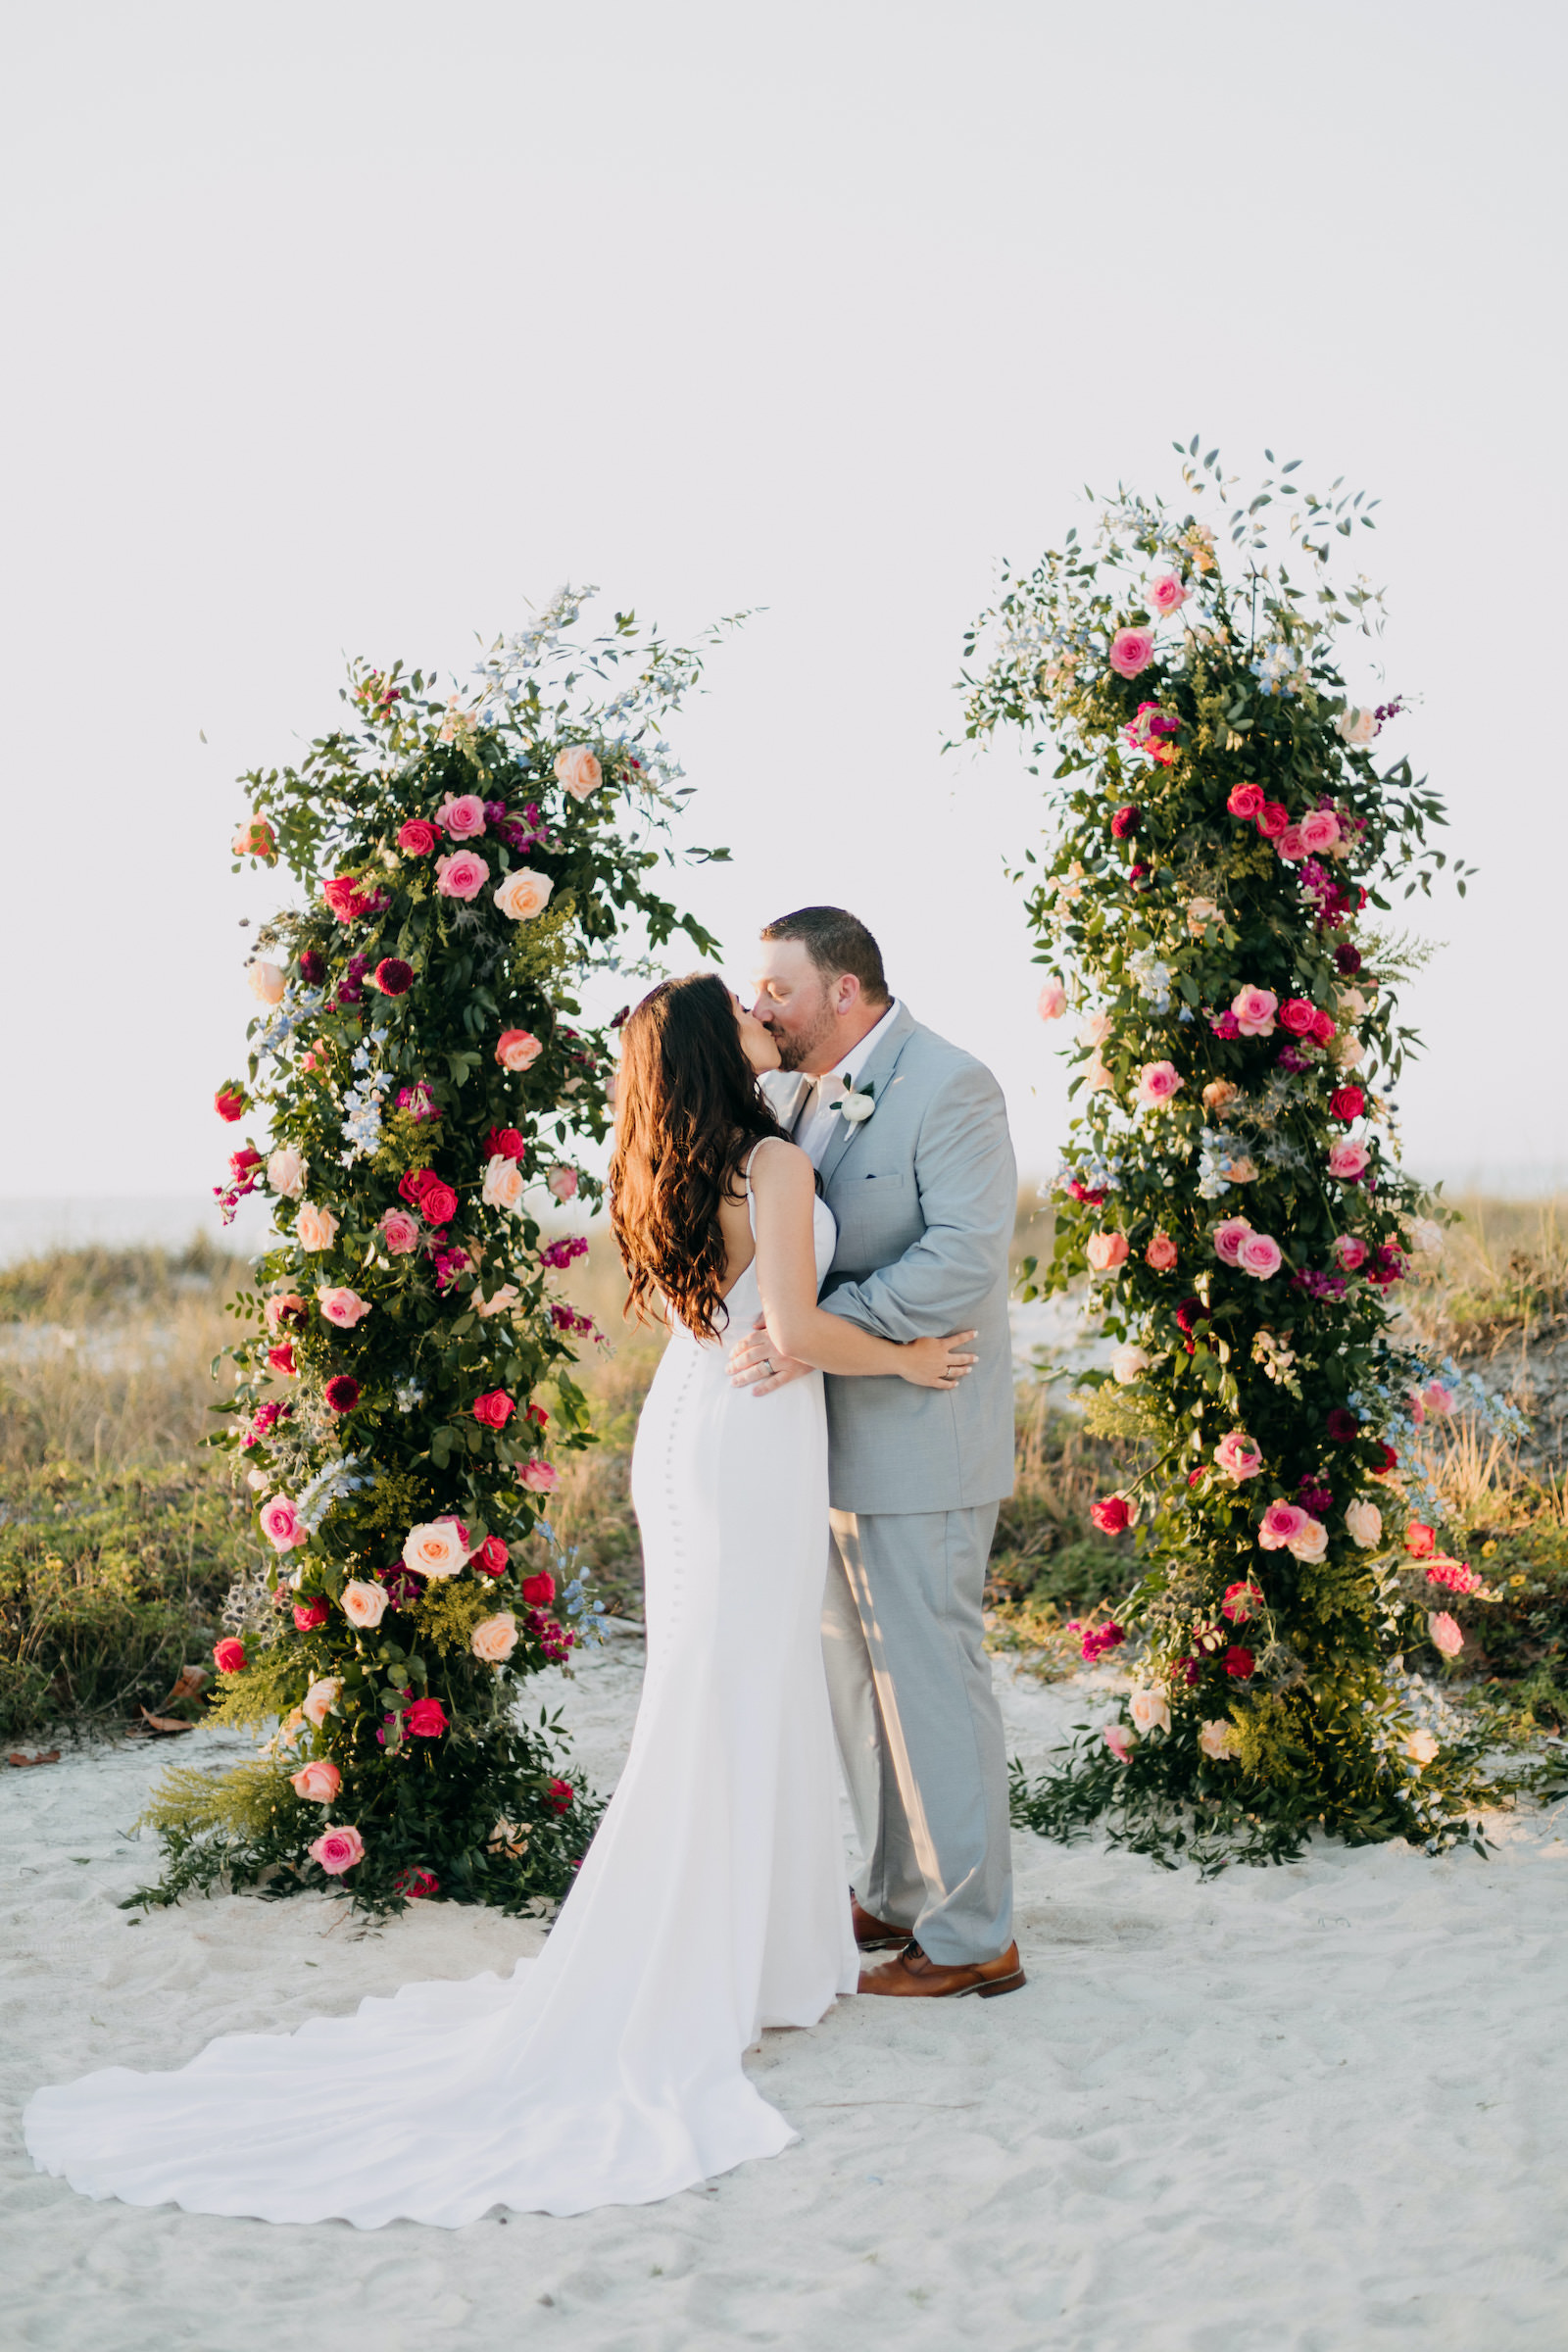 Florida Beach Wedding Archives - Marry Me Tampa Bay | Local, Real Wedding  Inspiration & Vendor Recommendation & Reviews